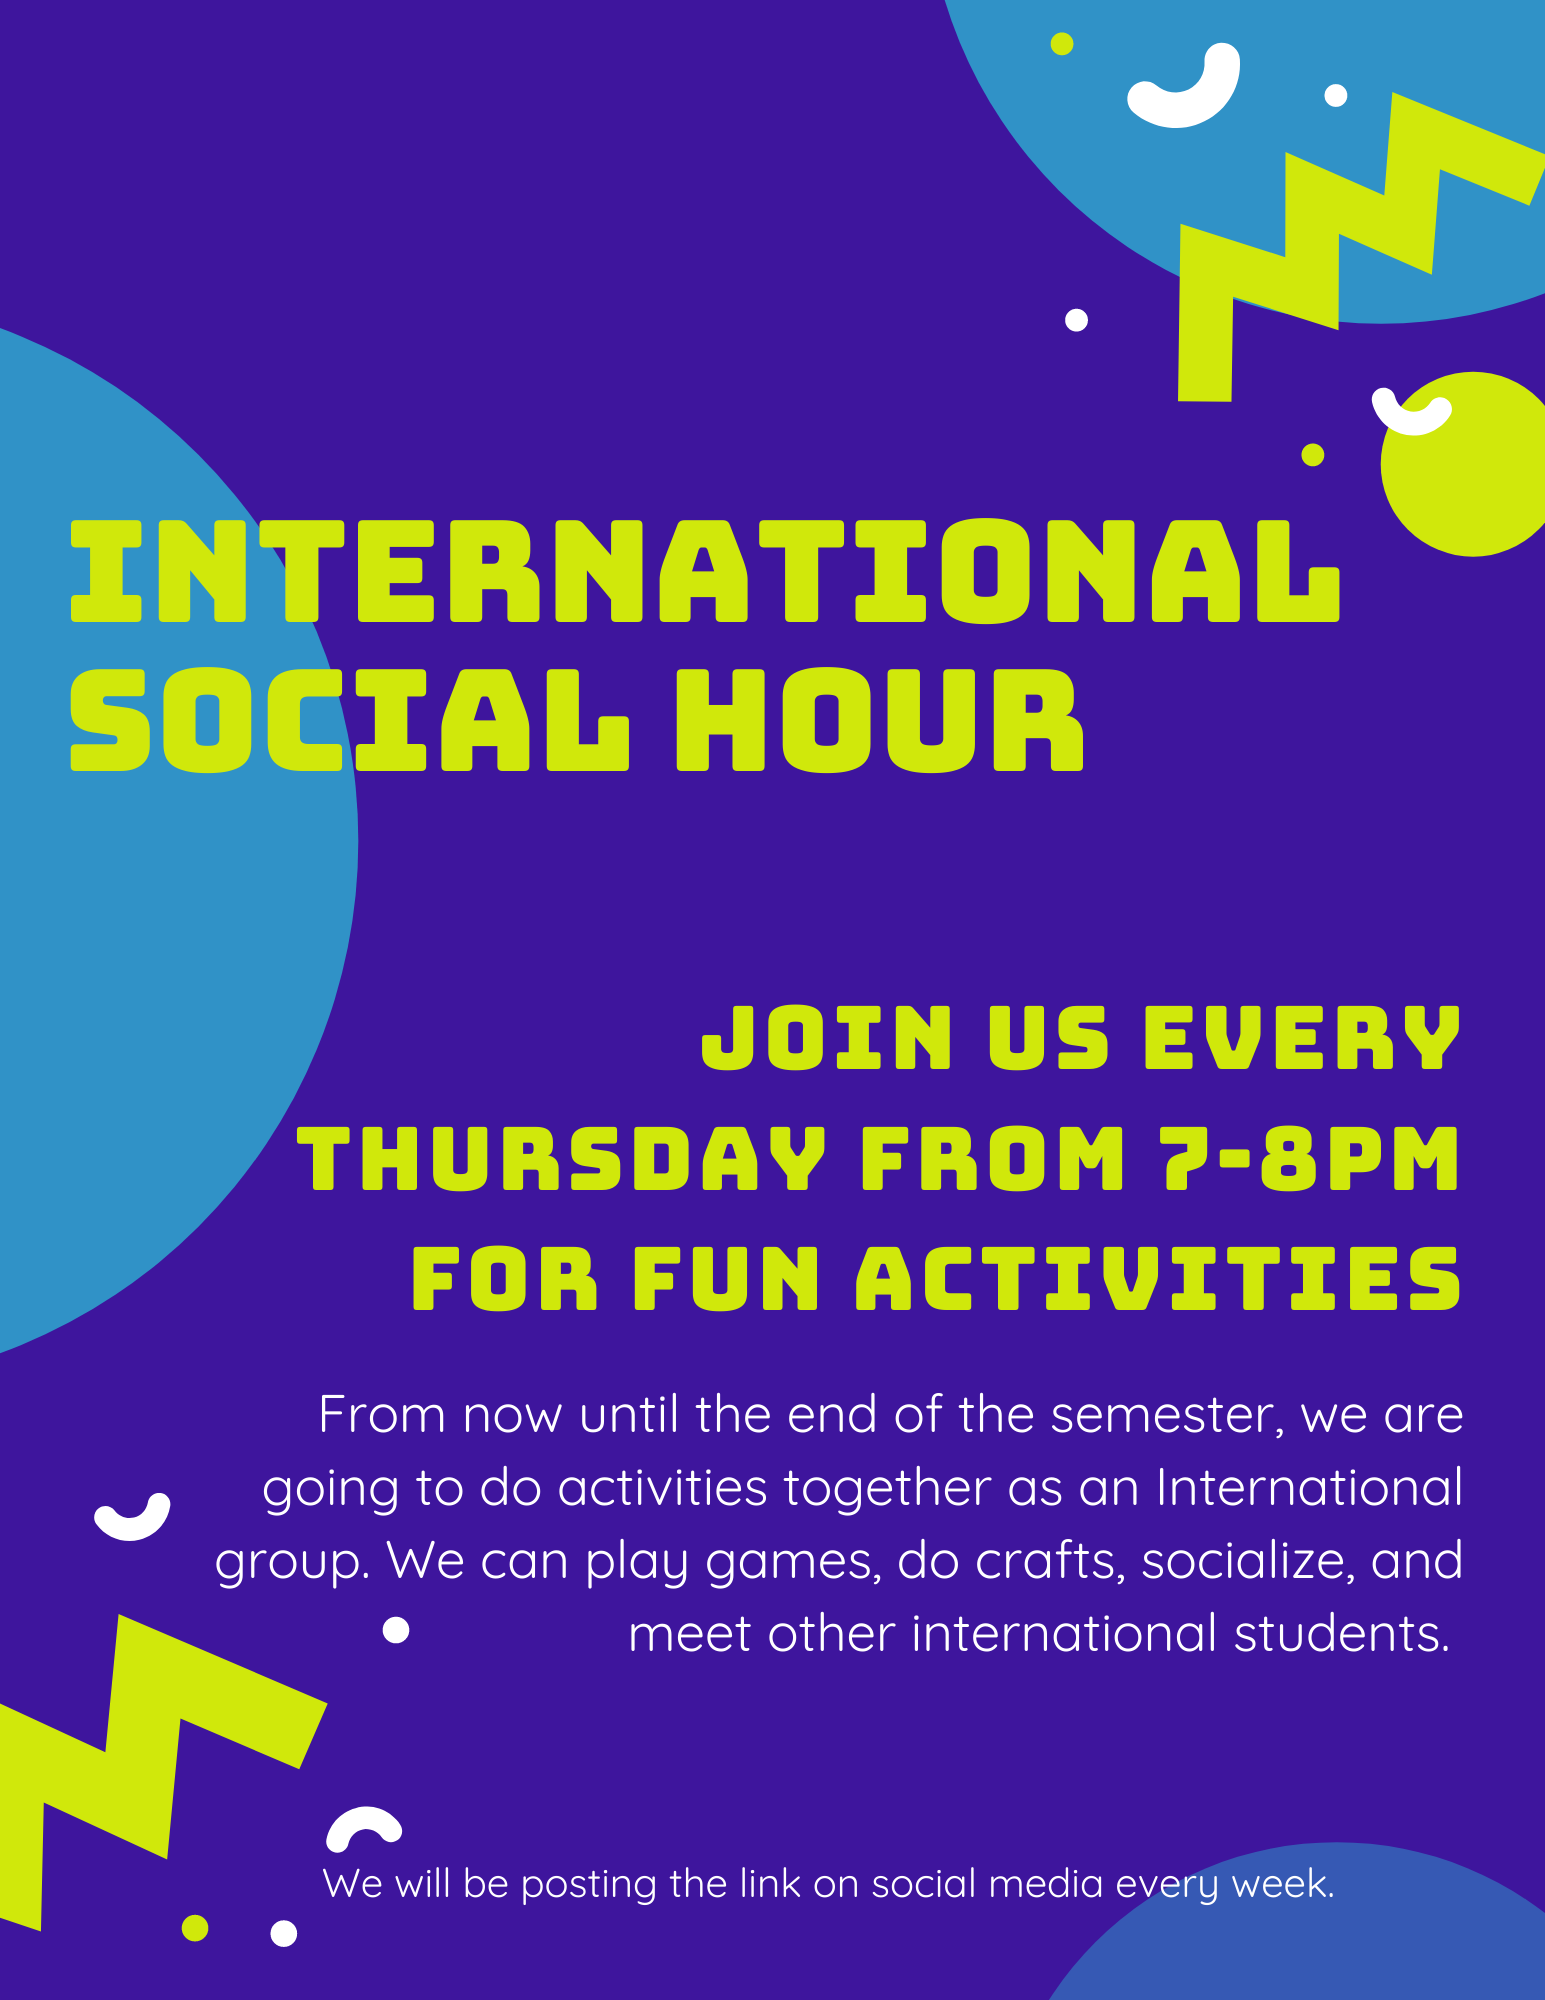 International social hour. Join us every Thursday from 7-8pm for fun activities. From now until the end of the semester, we are going to do activities together as an International group. We can play games, do crafts, socialize, and meet other international students.